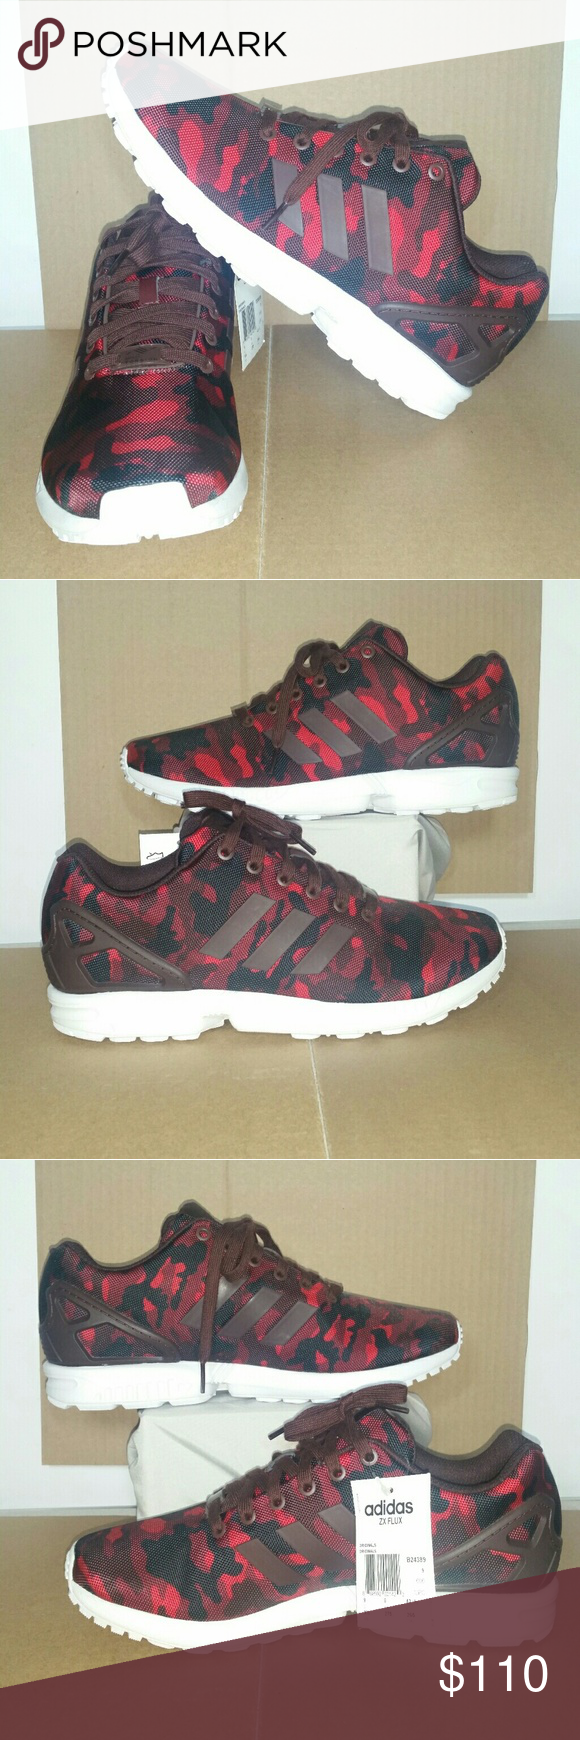 d034a9f24e499 NWT Adidas ZX Flux Torsion Red Camo Shoes B24389 New, without box, Adidas  ZX Flux Torsion shoes. They are a red and black camouflage pattern, model  #B24389.